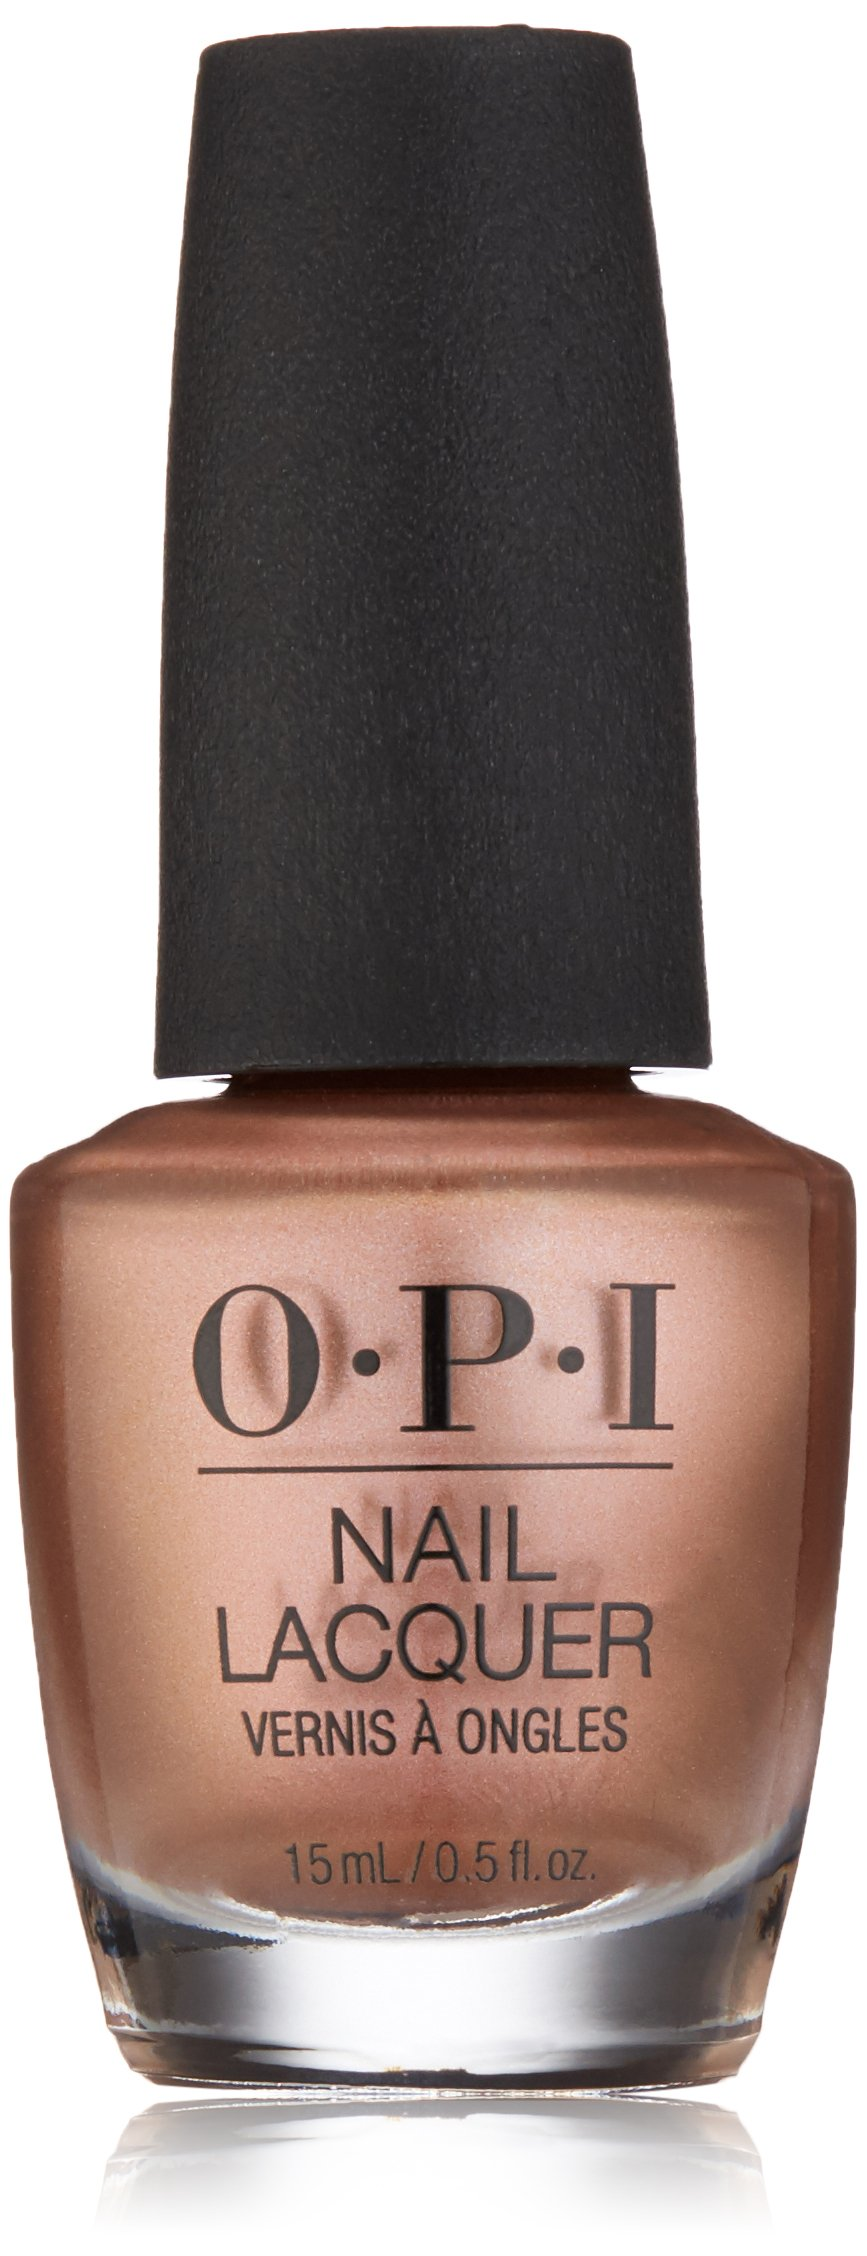 OPI Nail Lacquer, Made It to the Seventh Hill!, 0.5 fl. oz.